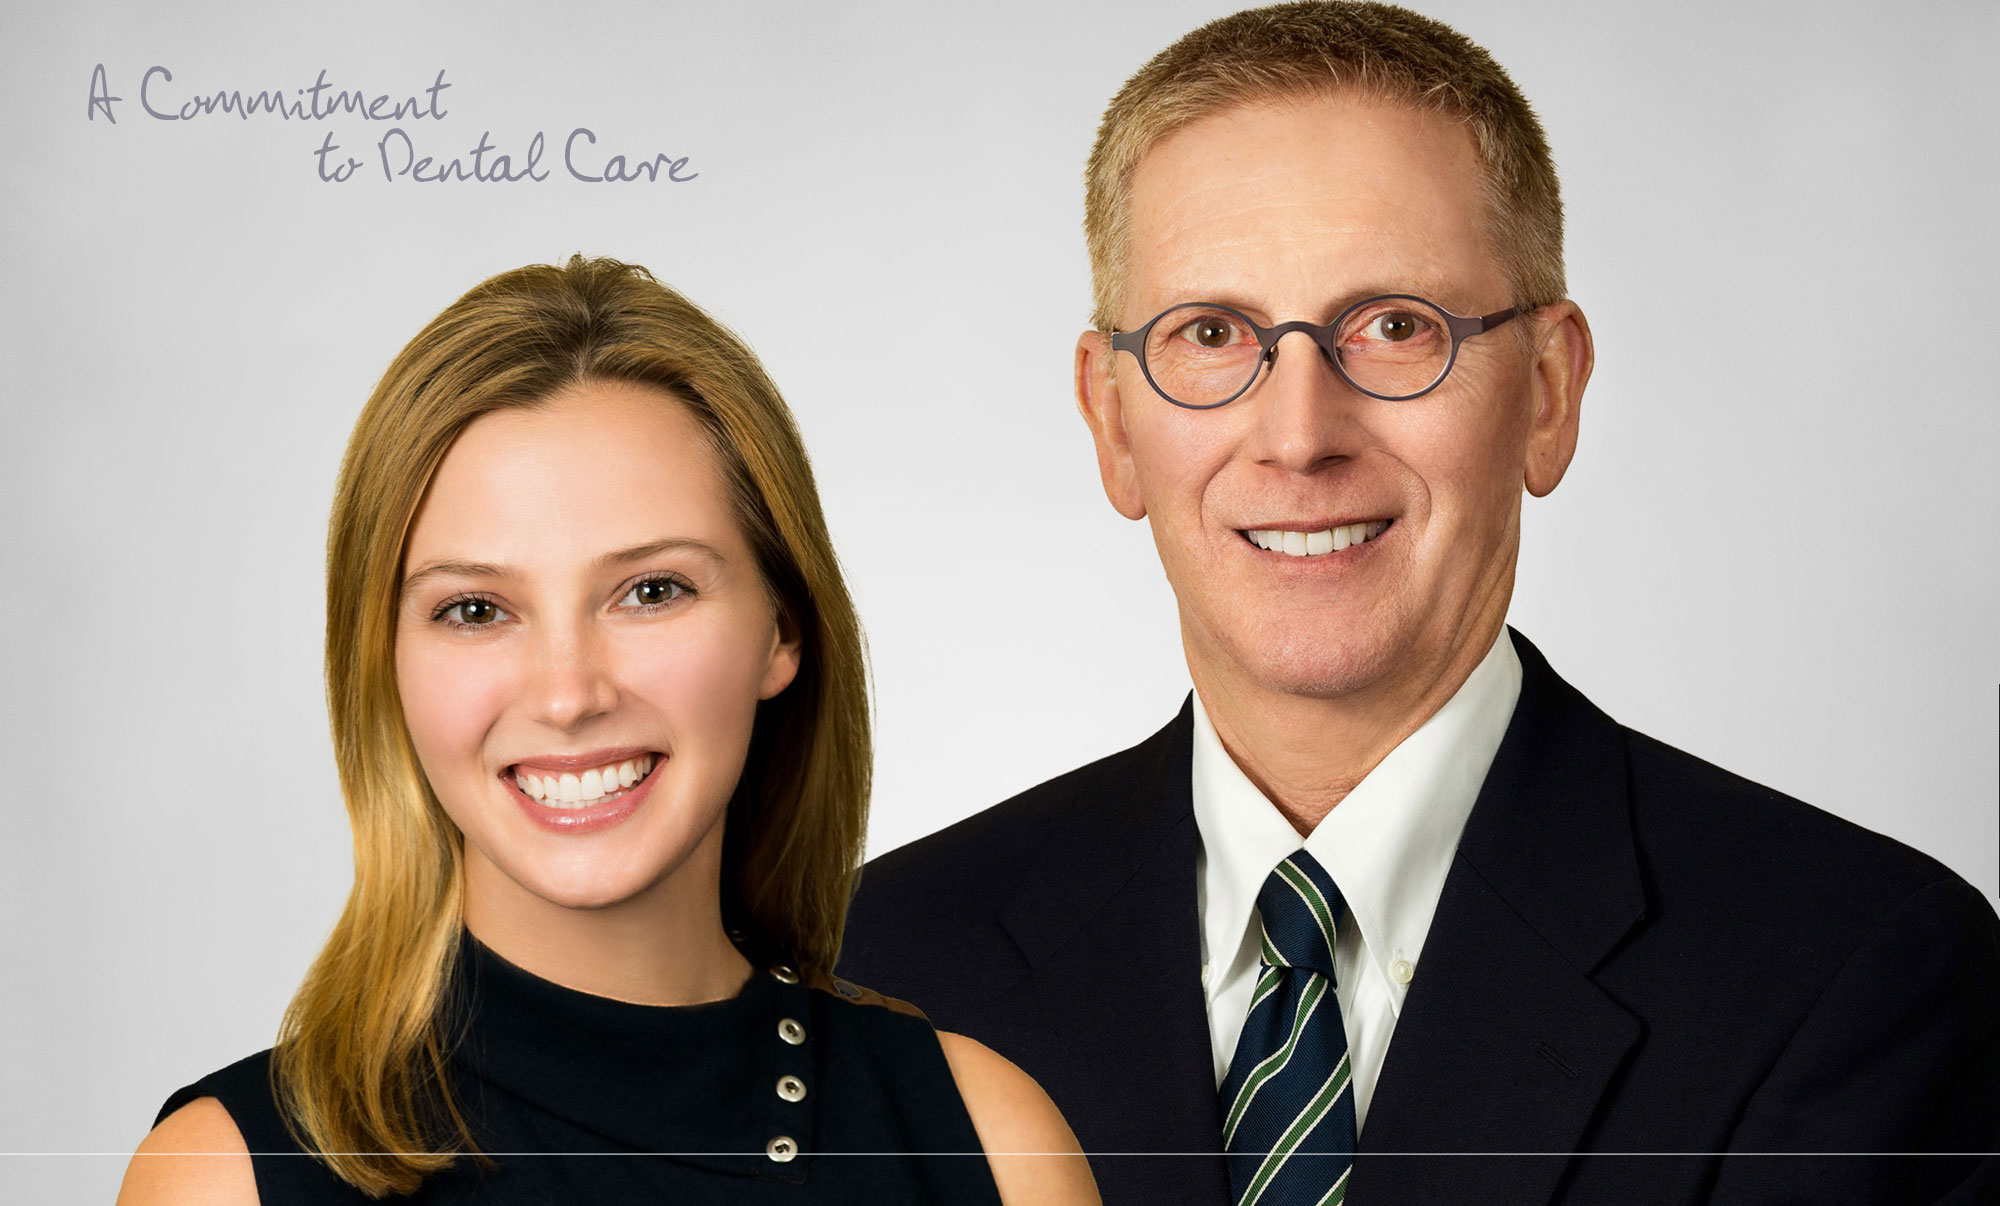 Doctors of Main Street Dentists John A. Scharcherl, DDS & Kate C. Scharcherl, DDS